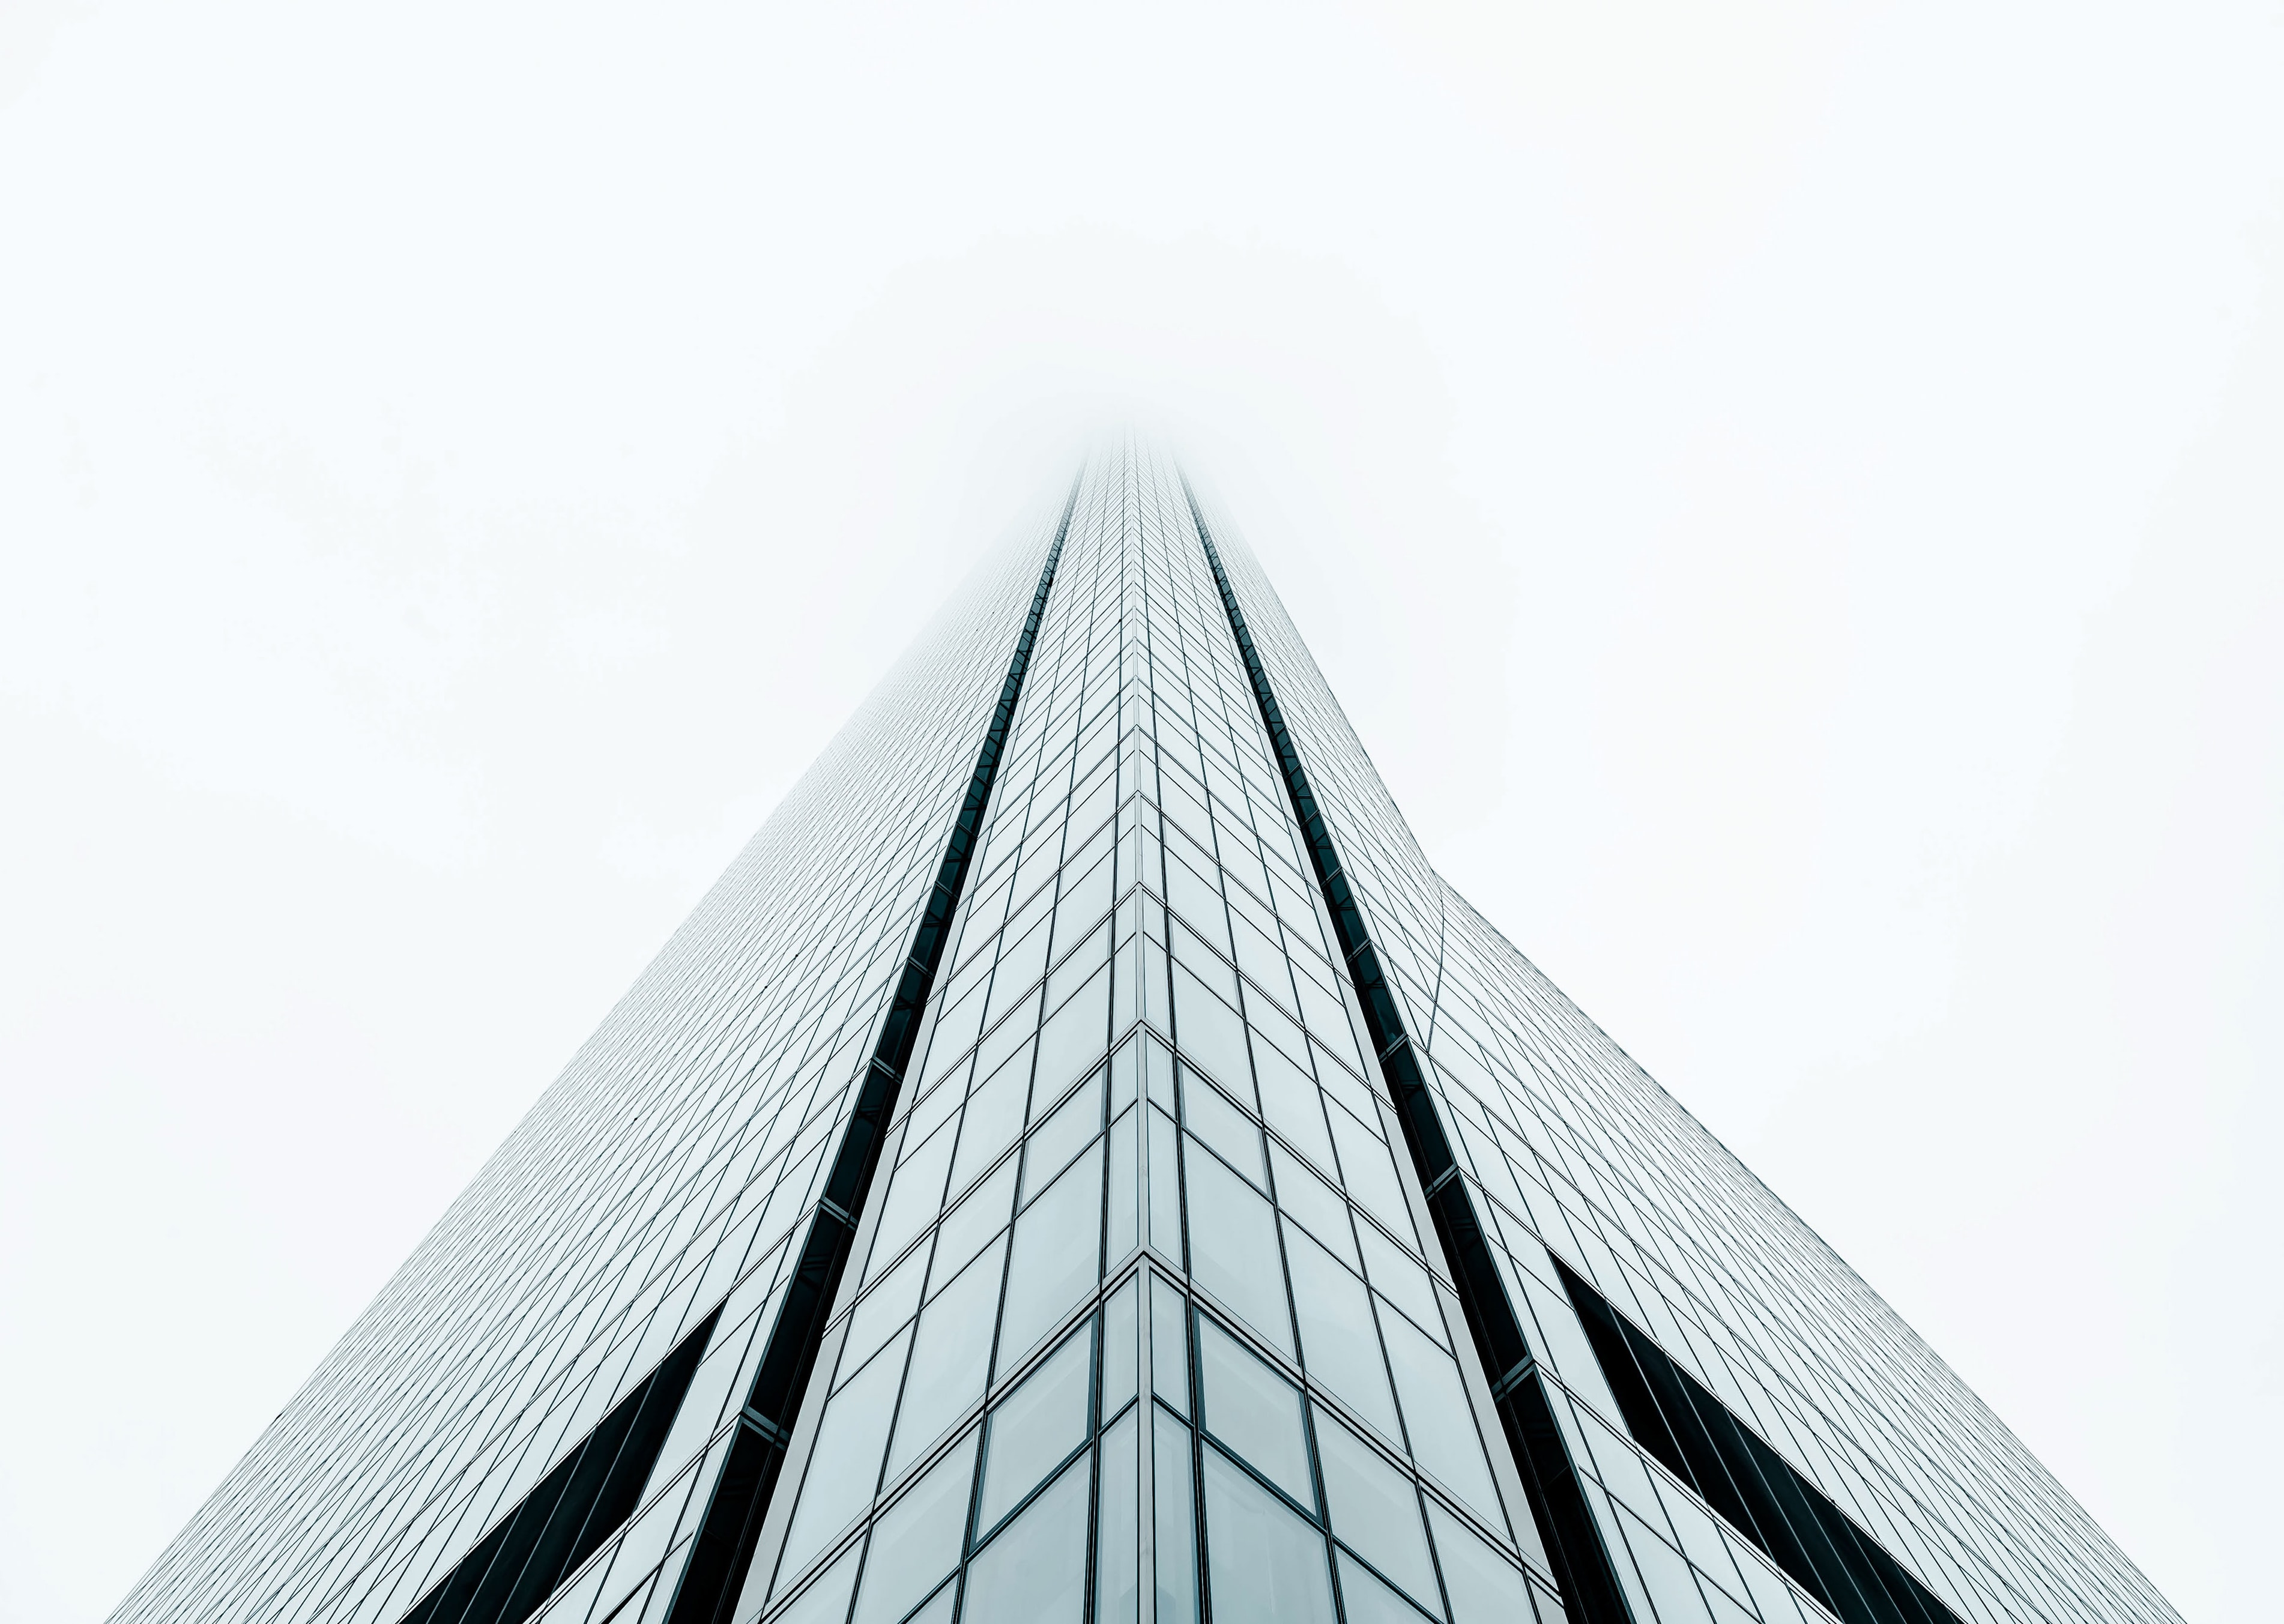 Fog covers the top of a tall building with rectangular glass design facade in Madrid.